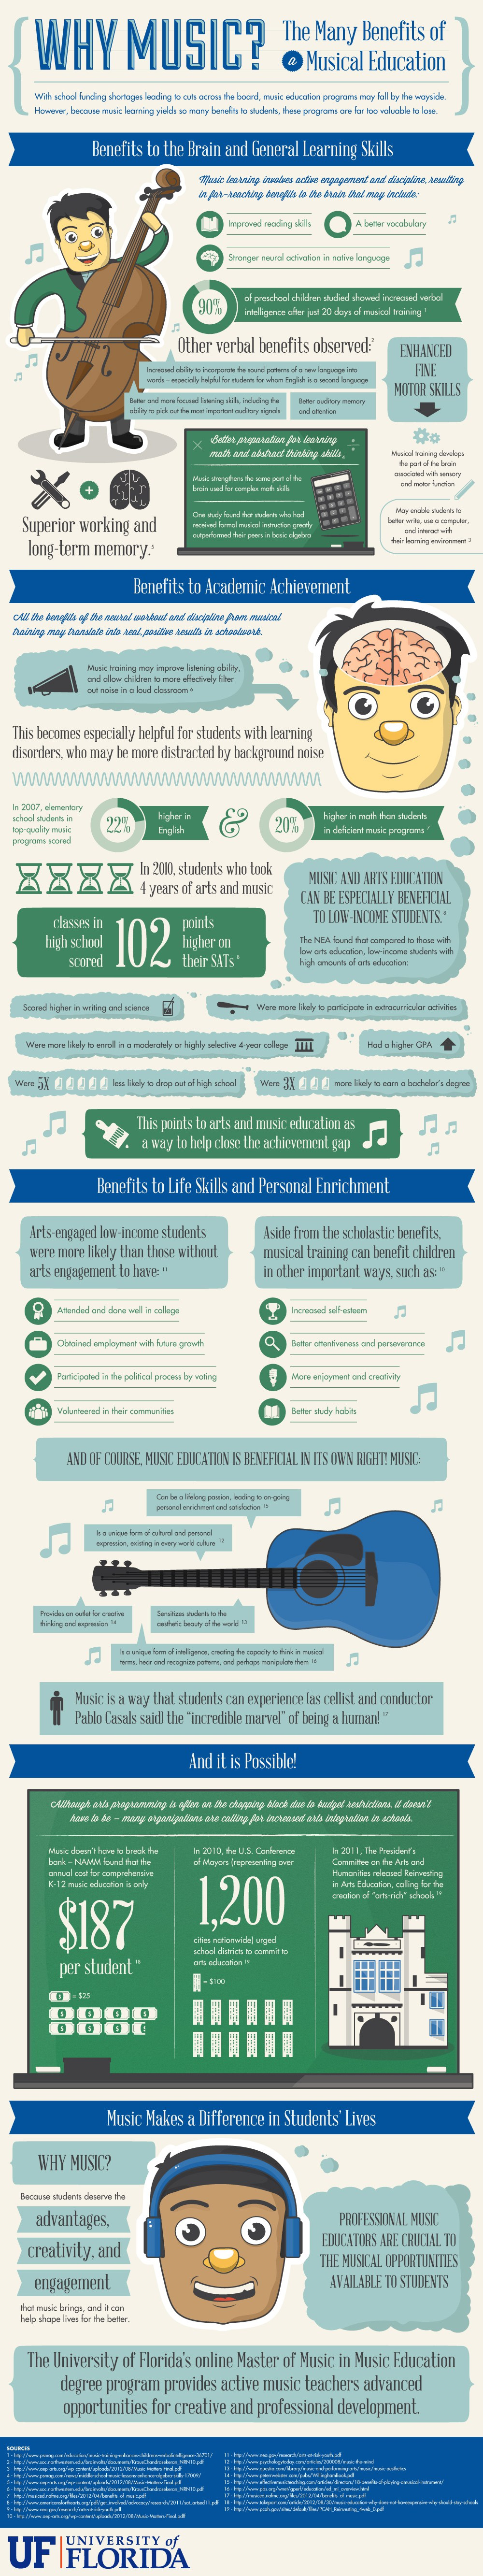 benefits-of-music